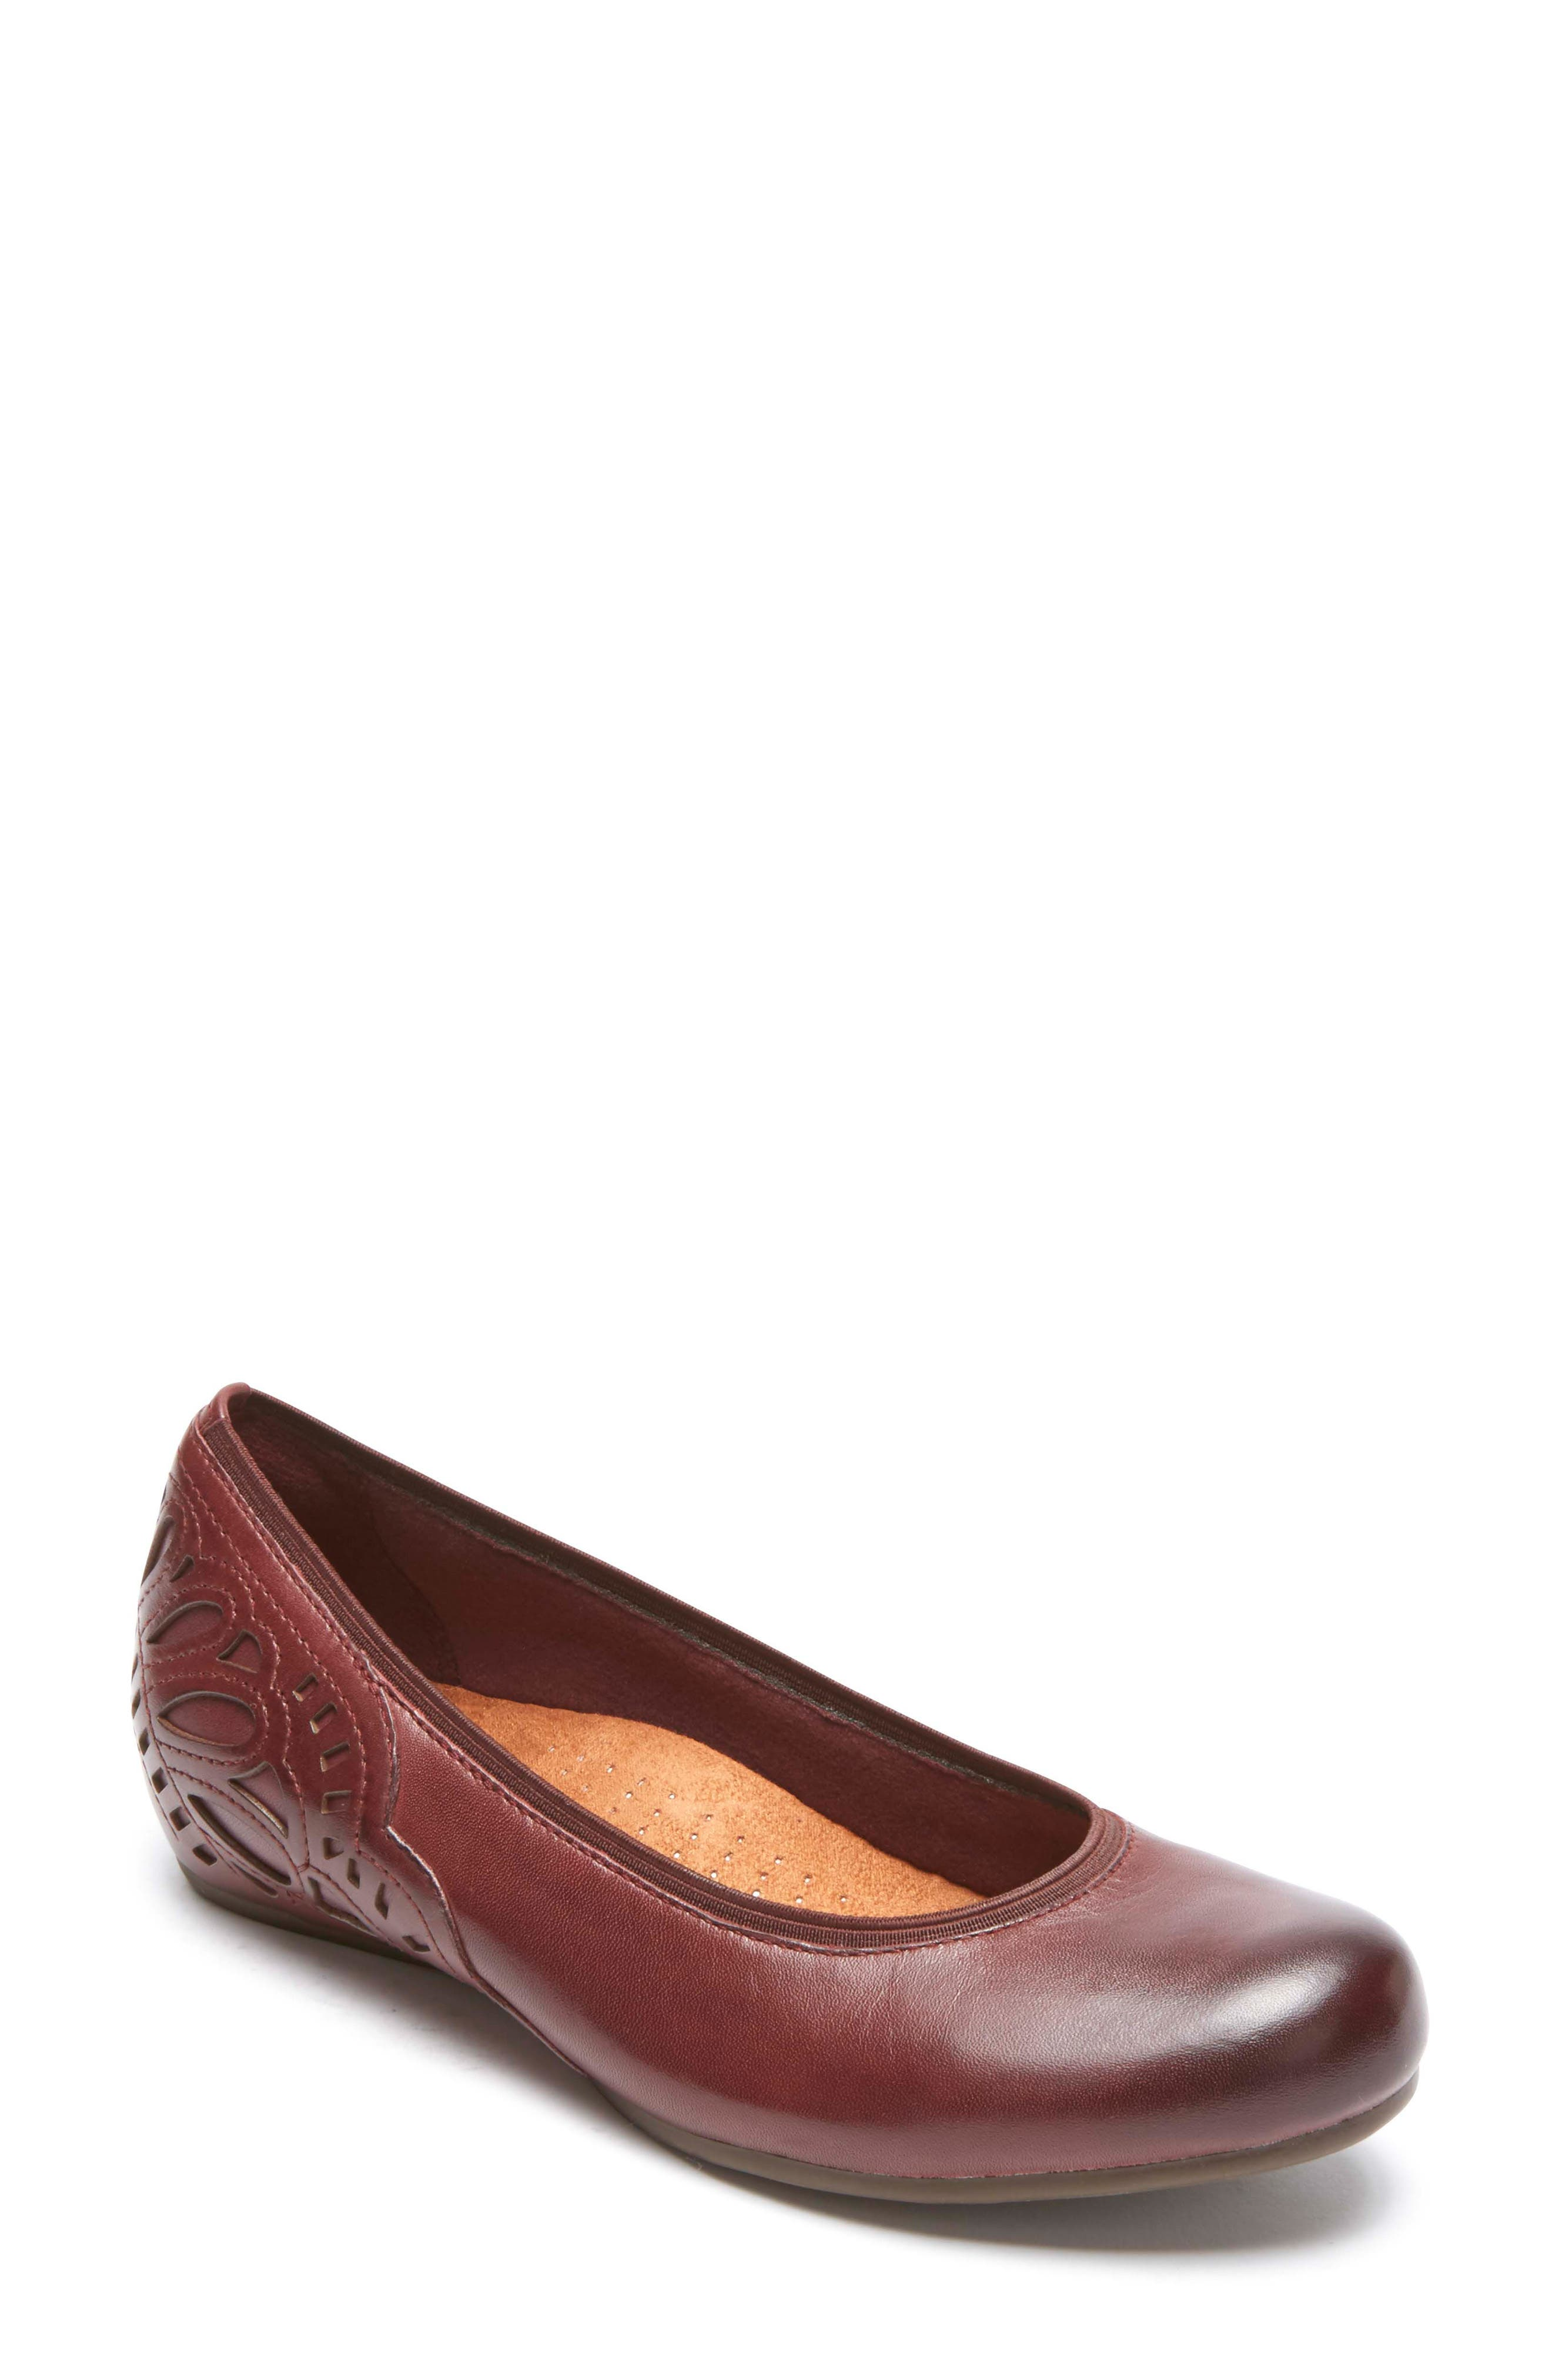 Sharleen Wedge Pump,                             Main thumbnail 1, color,                             MERLOT LEATHER